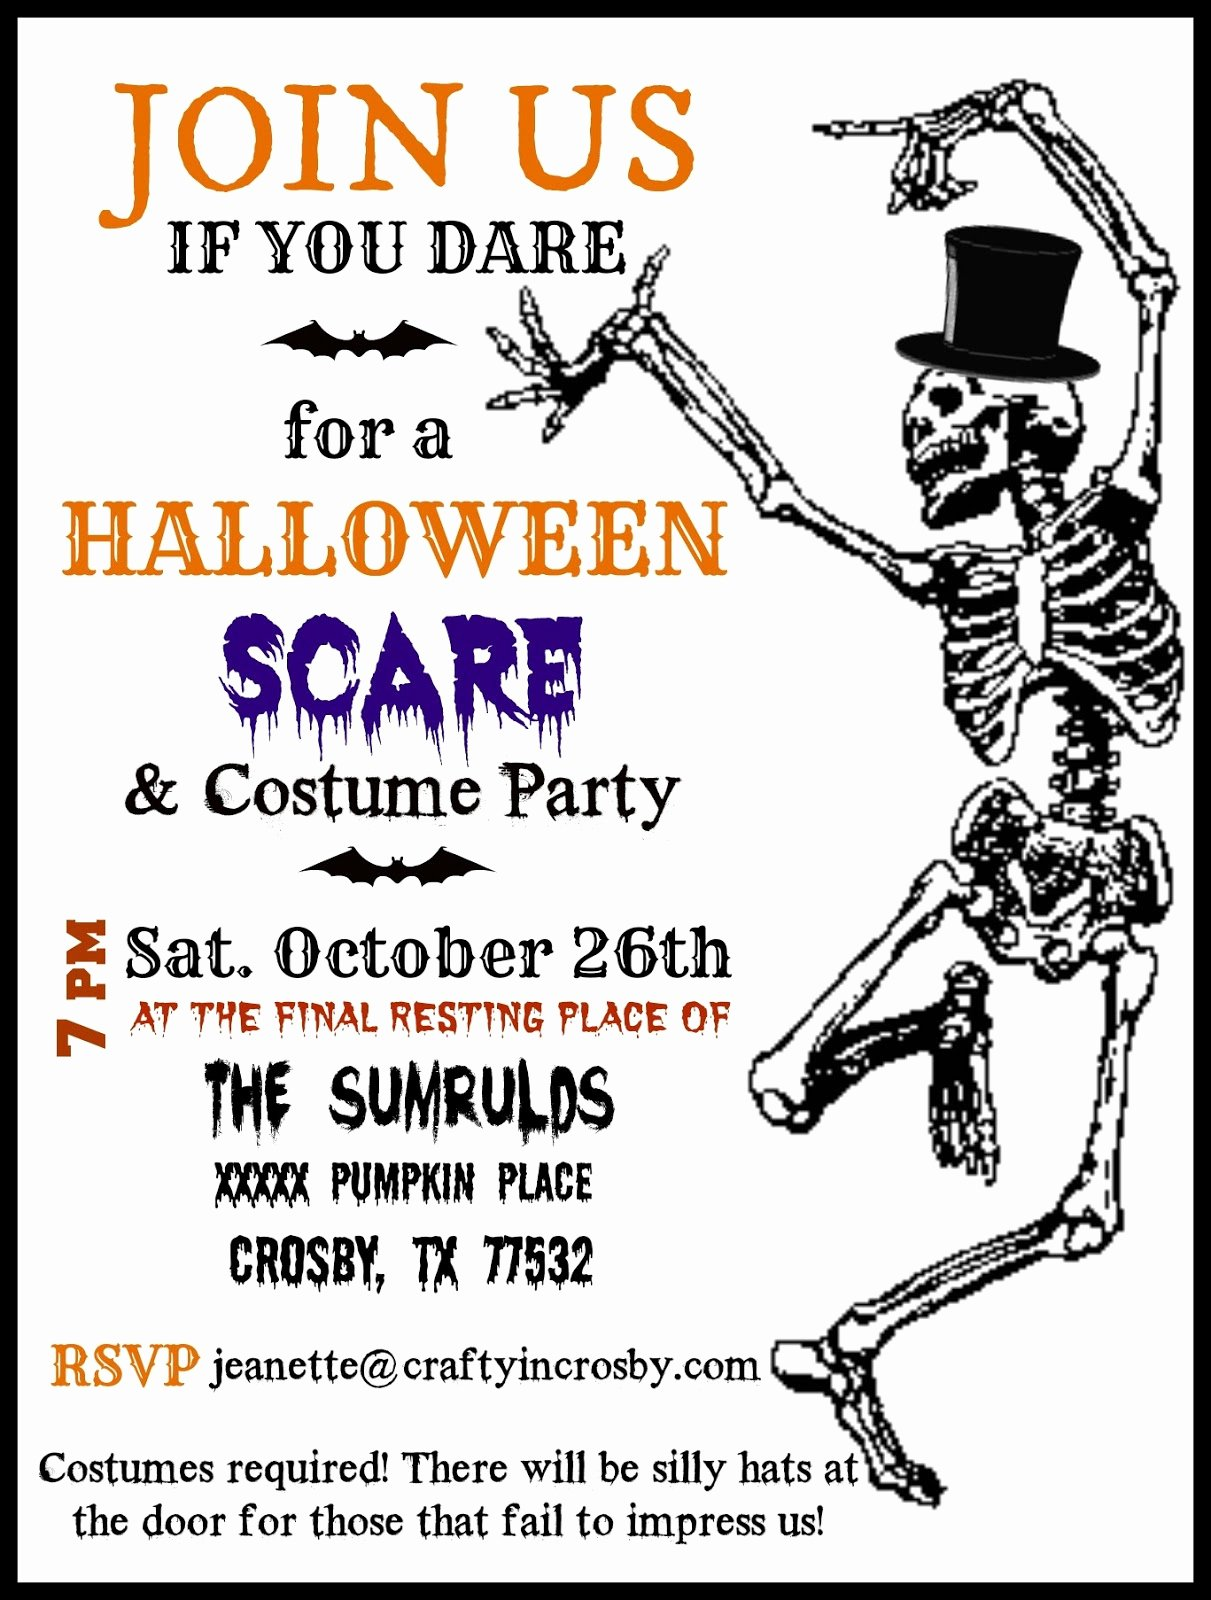 Halloween Party Invitations Template Luxury Crafty In Crosby Halloween Party Invitations with Template